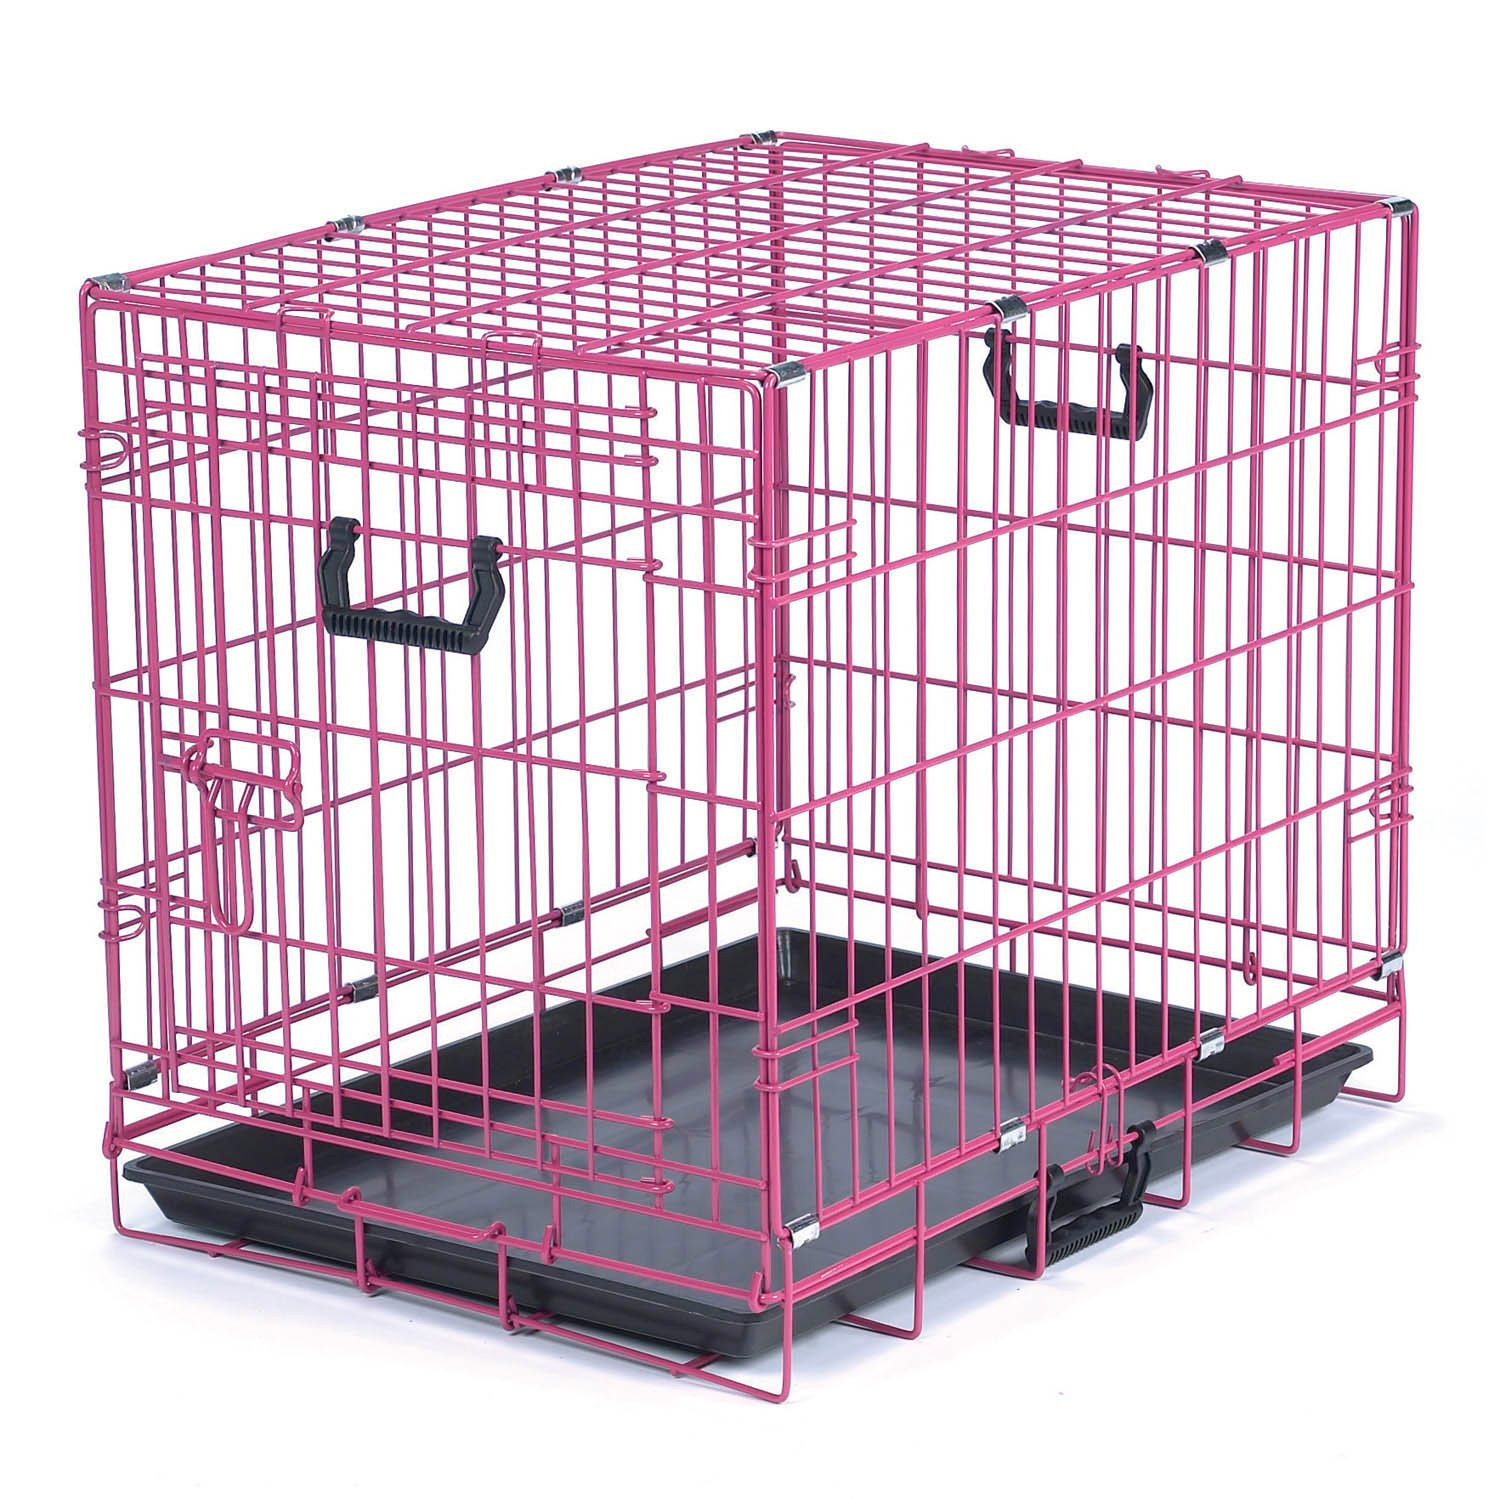 Be Good Appeal Color Pink Dog Crate | Petco - photo#1